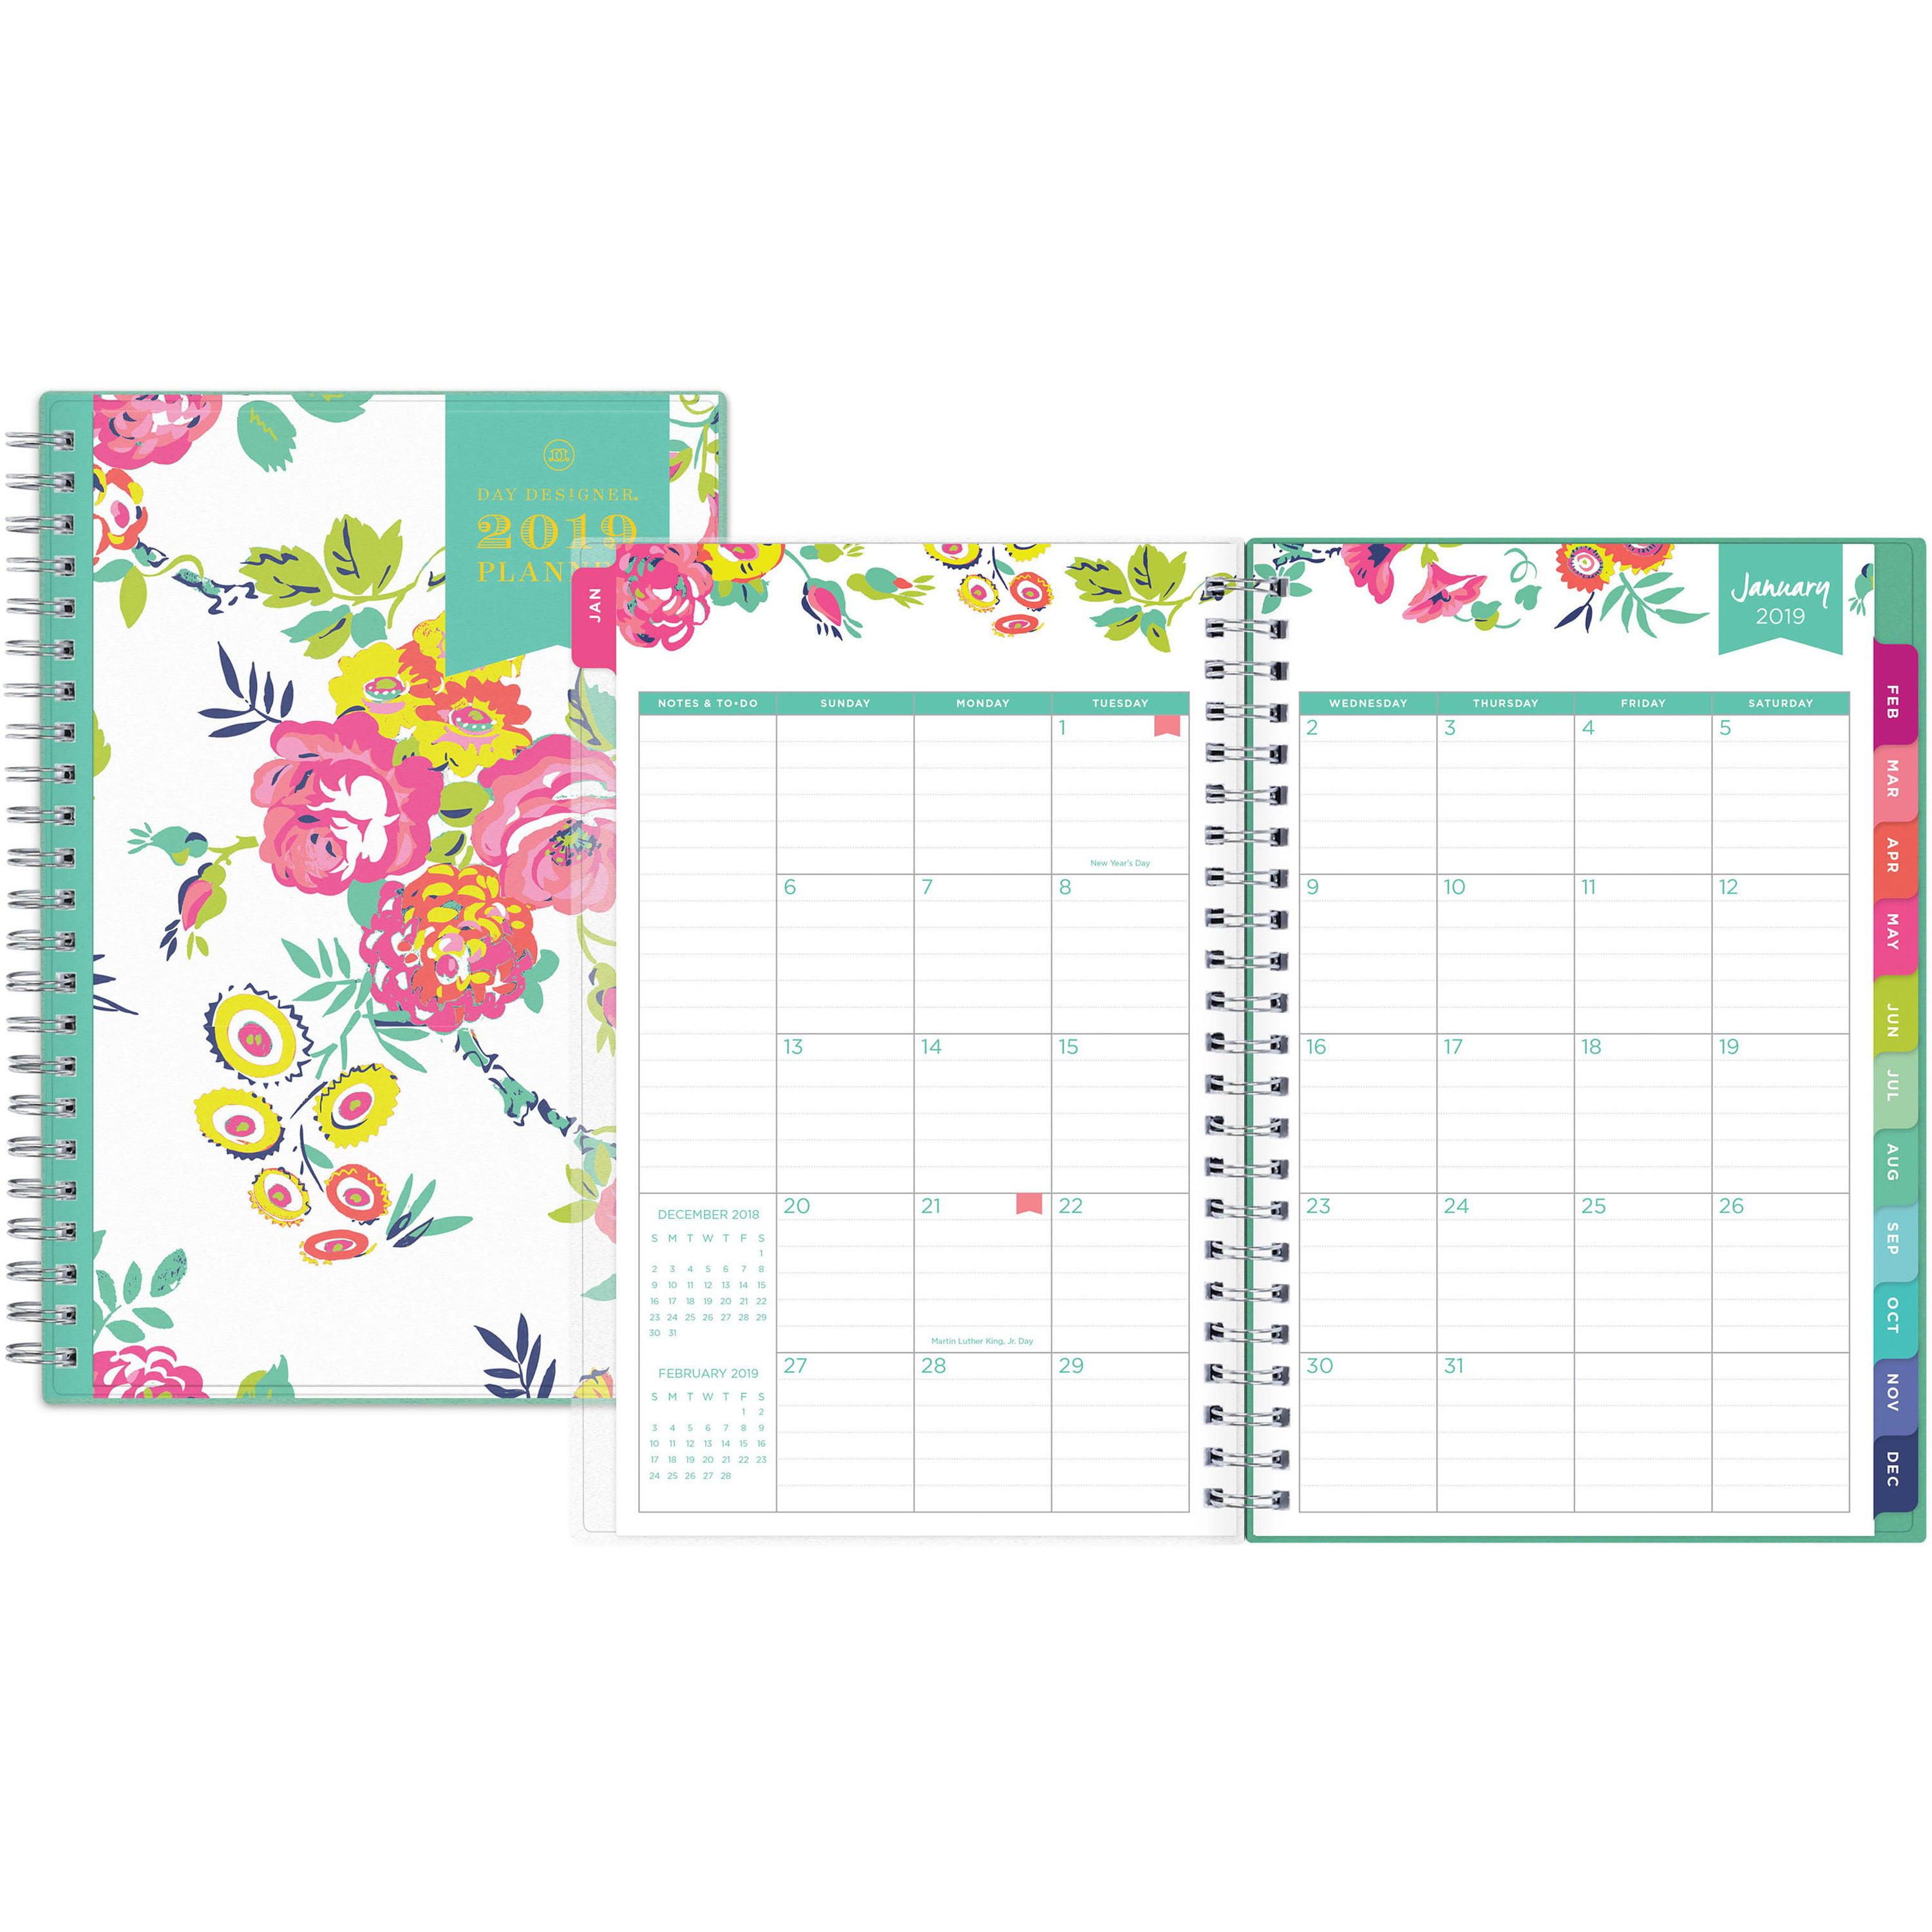 photo relating to Day Designer for Blue Sky identified as Working day Designer for Blue Sky 2019 Weekly Every month Planner, Dual-Cord Binding, 5\